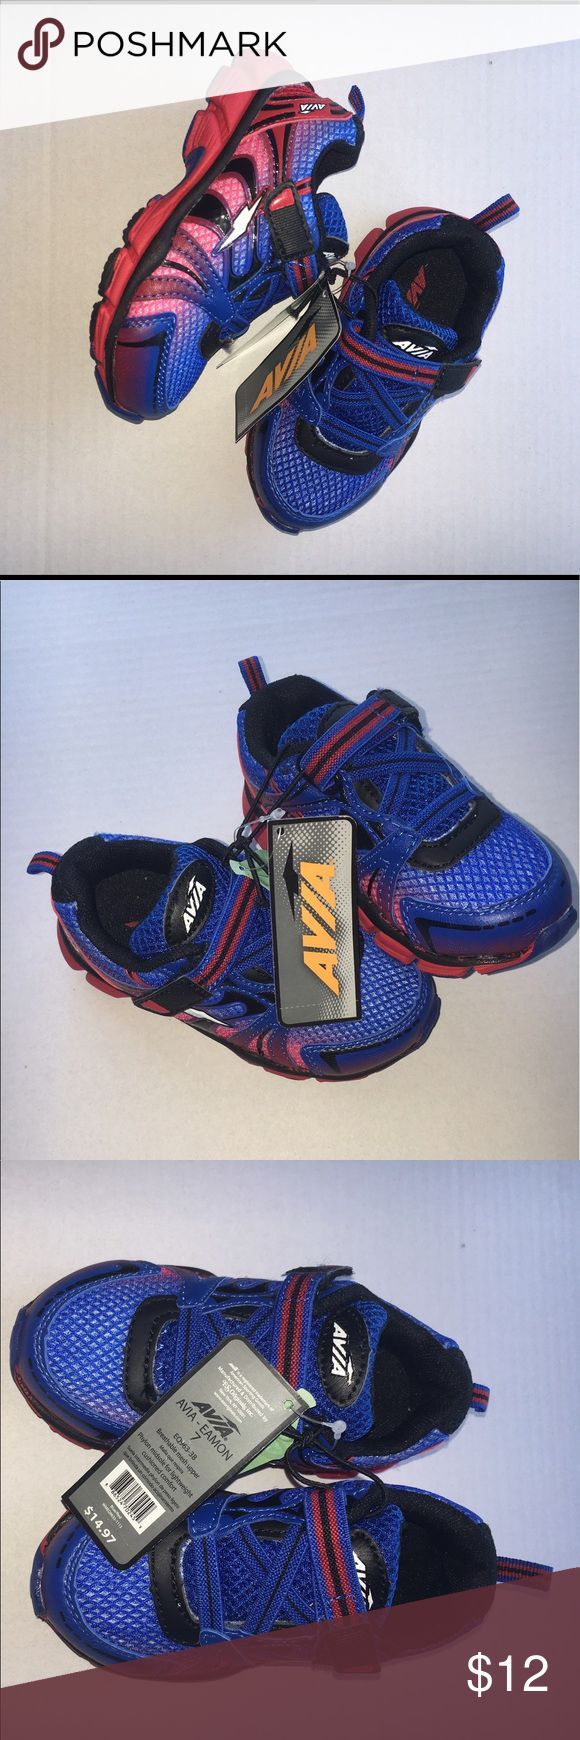 NWT Avia toddler boys blue and red shoes size 7 NWT Avia toddler boys blue and red shoes size 7. Super cute! Avia Shoes Sneakers